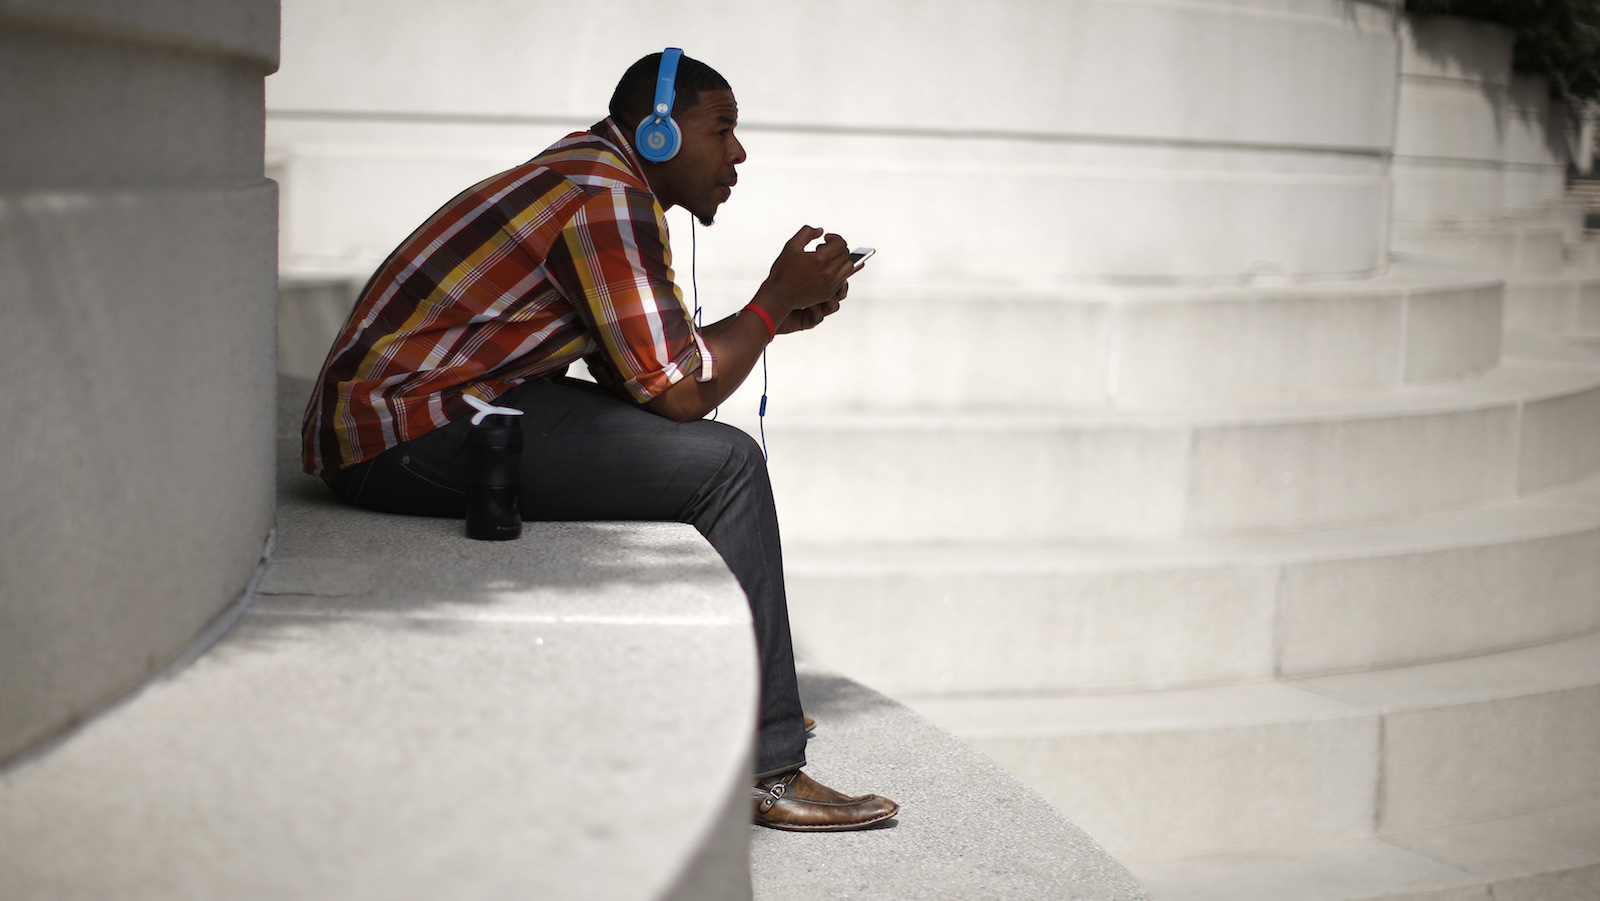 A man with Beats headphones listens to music on an iPhone in Los Angeles, California March 10, 2015.   REUTERS/Lucy Nicholson (UNITED STATES - Tags: SOCIETY) - RTR4SUFC